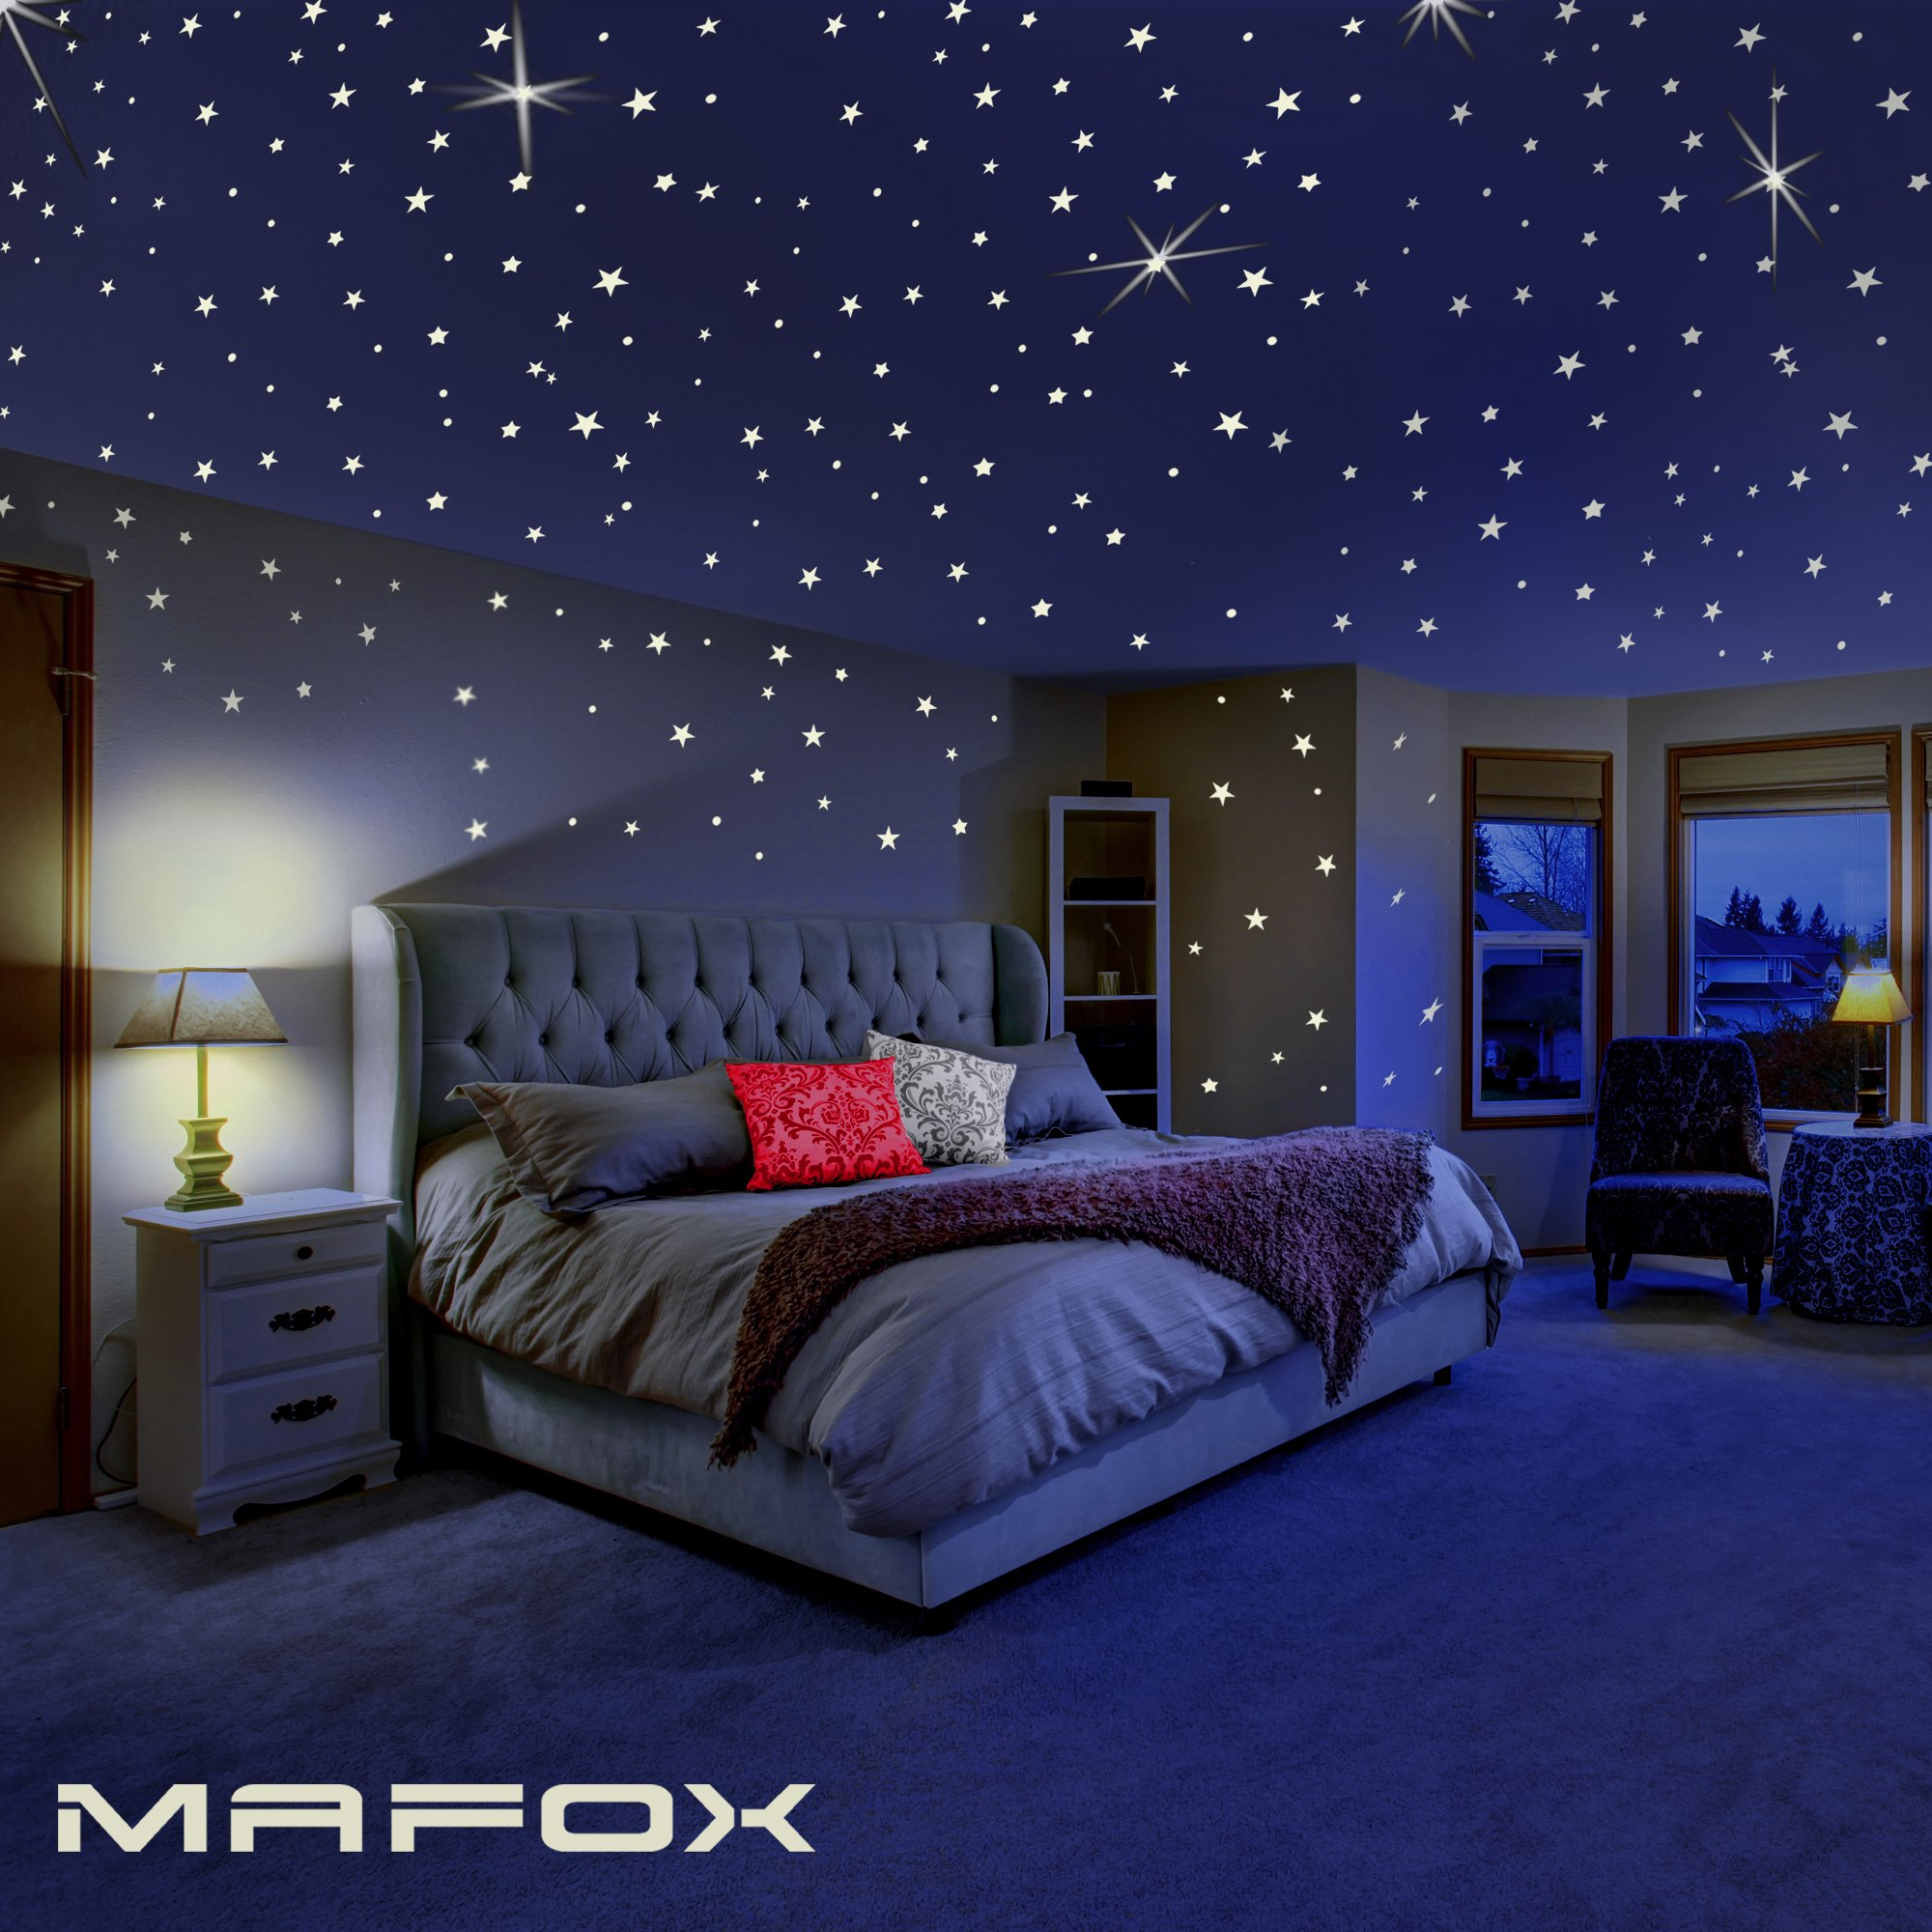 Amazon Glow In The Dark Stars With Moon For Ceiling Or Wall